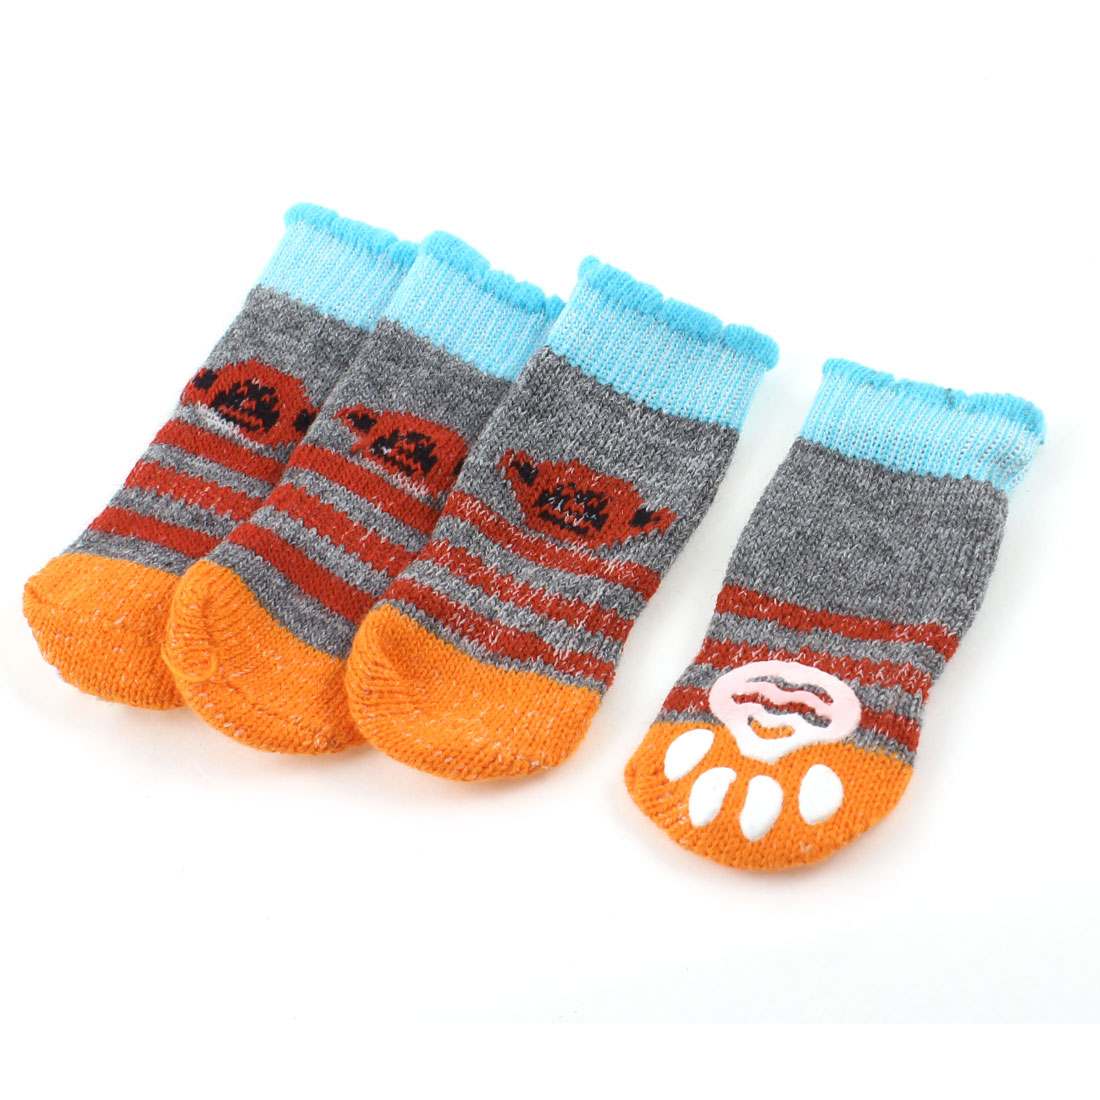 2 Pairs Knitted Gray Blue Stripe Paw Printed Elastic Pet Dog Puppy Socks